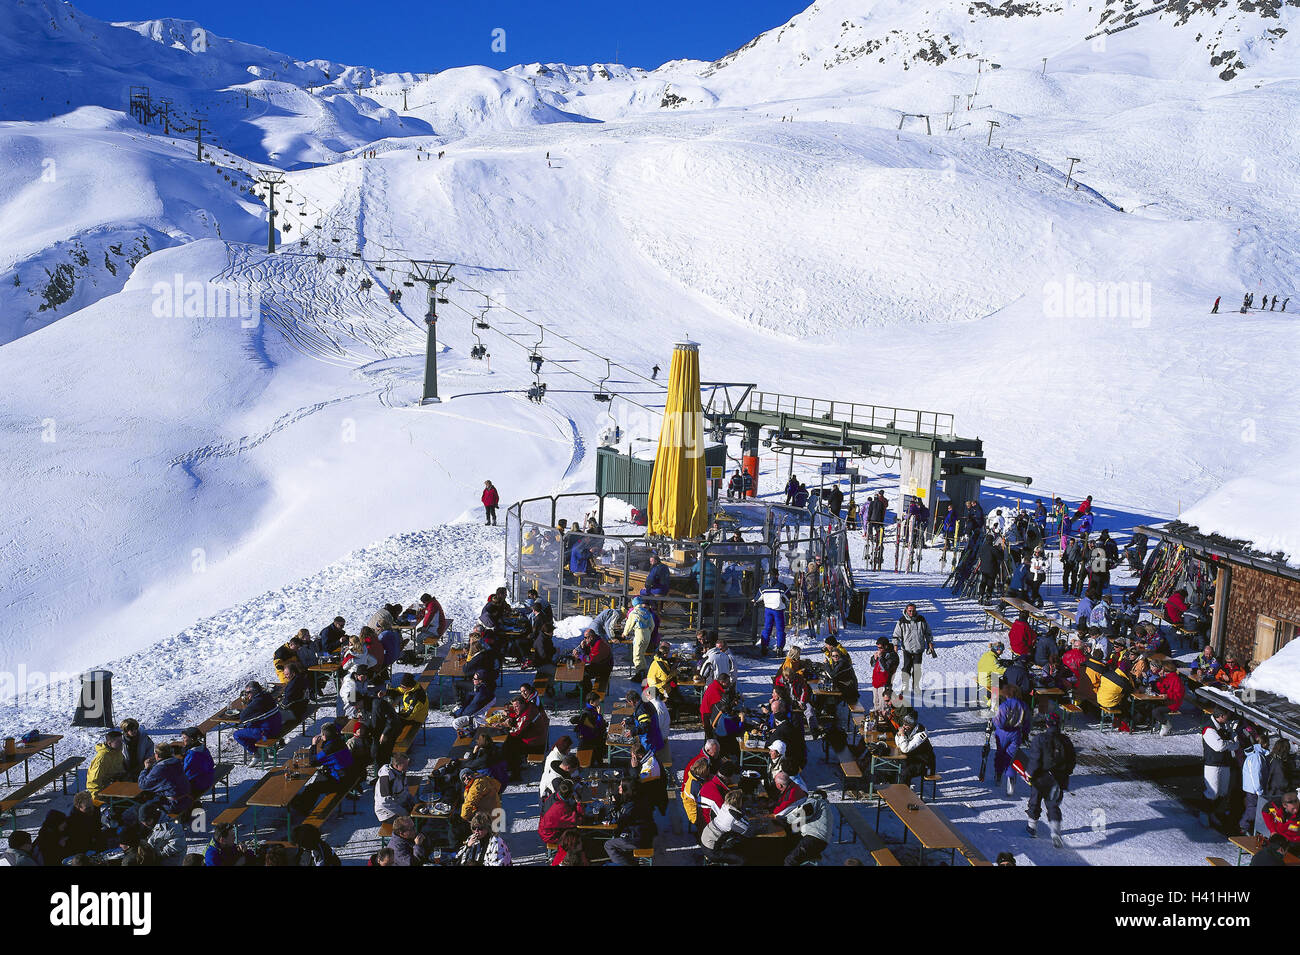 austria, vorarlberg, montafon, skiing area-high-level col stock